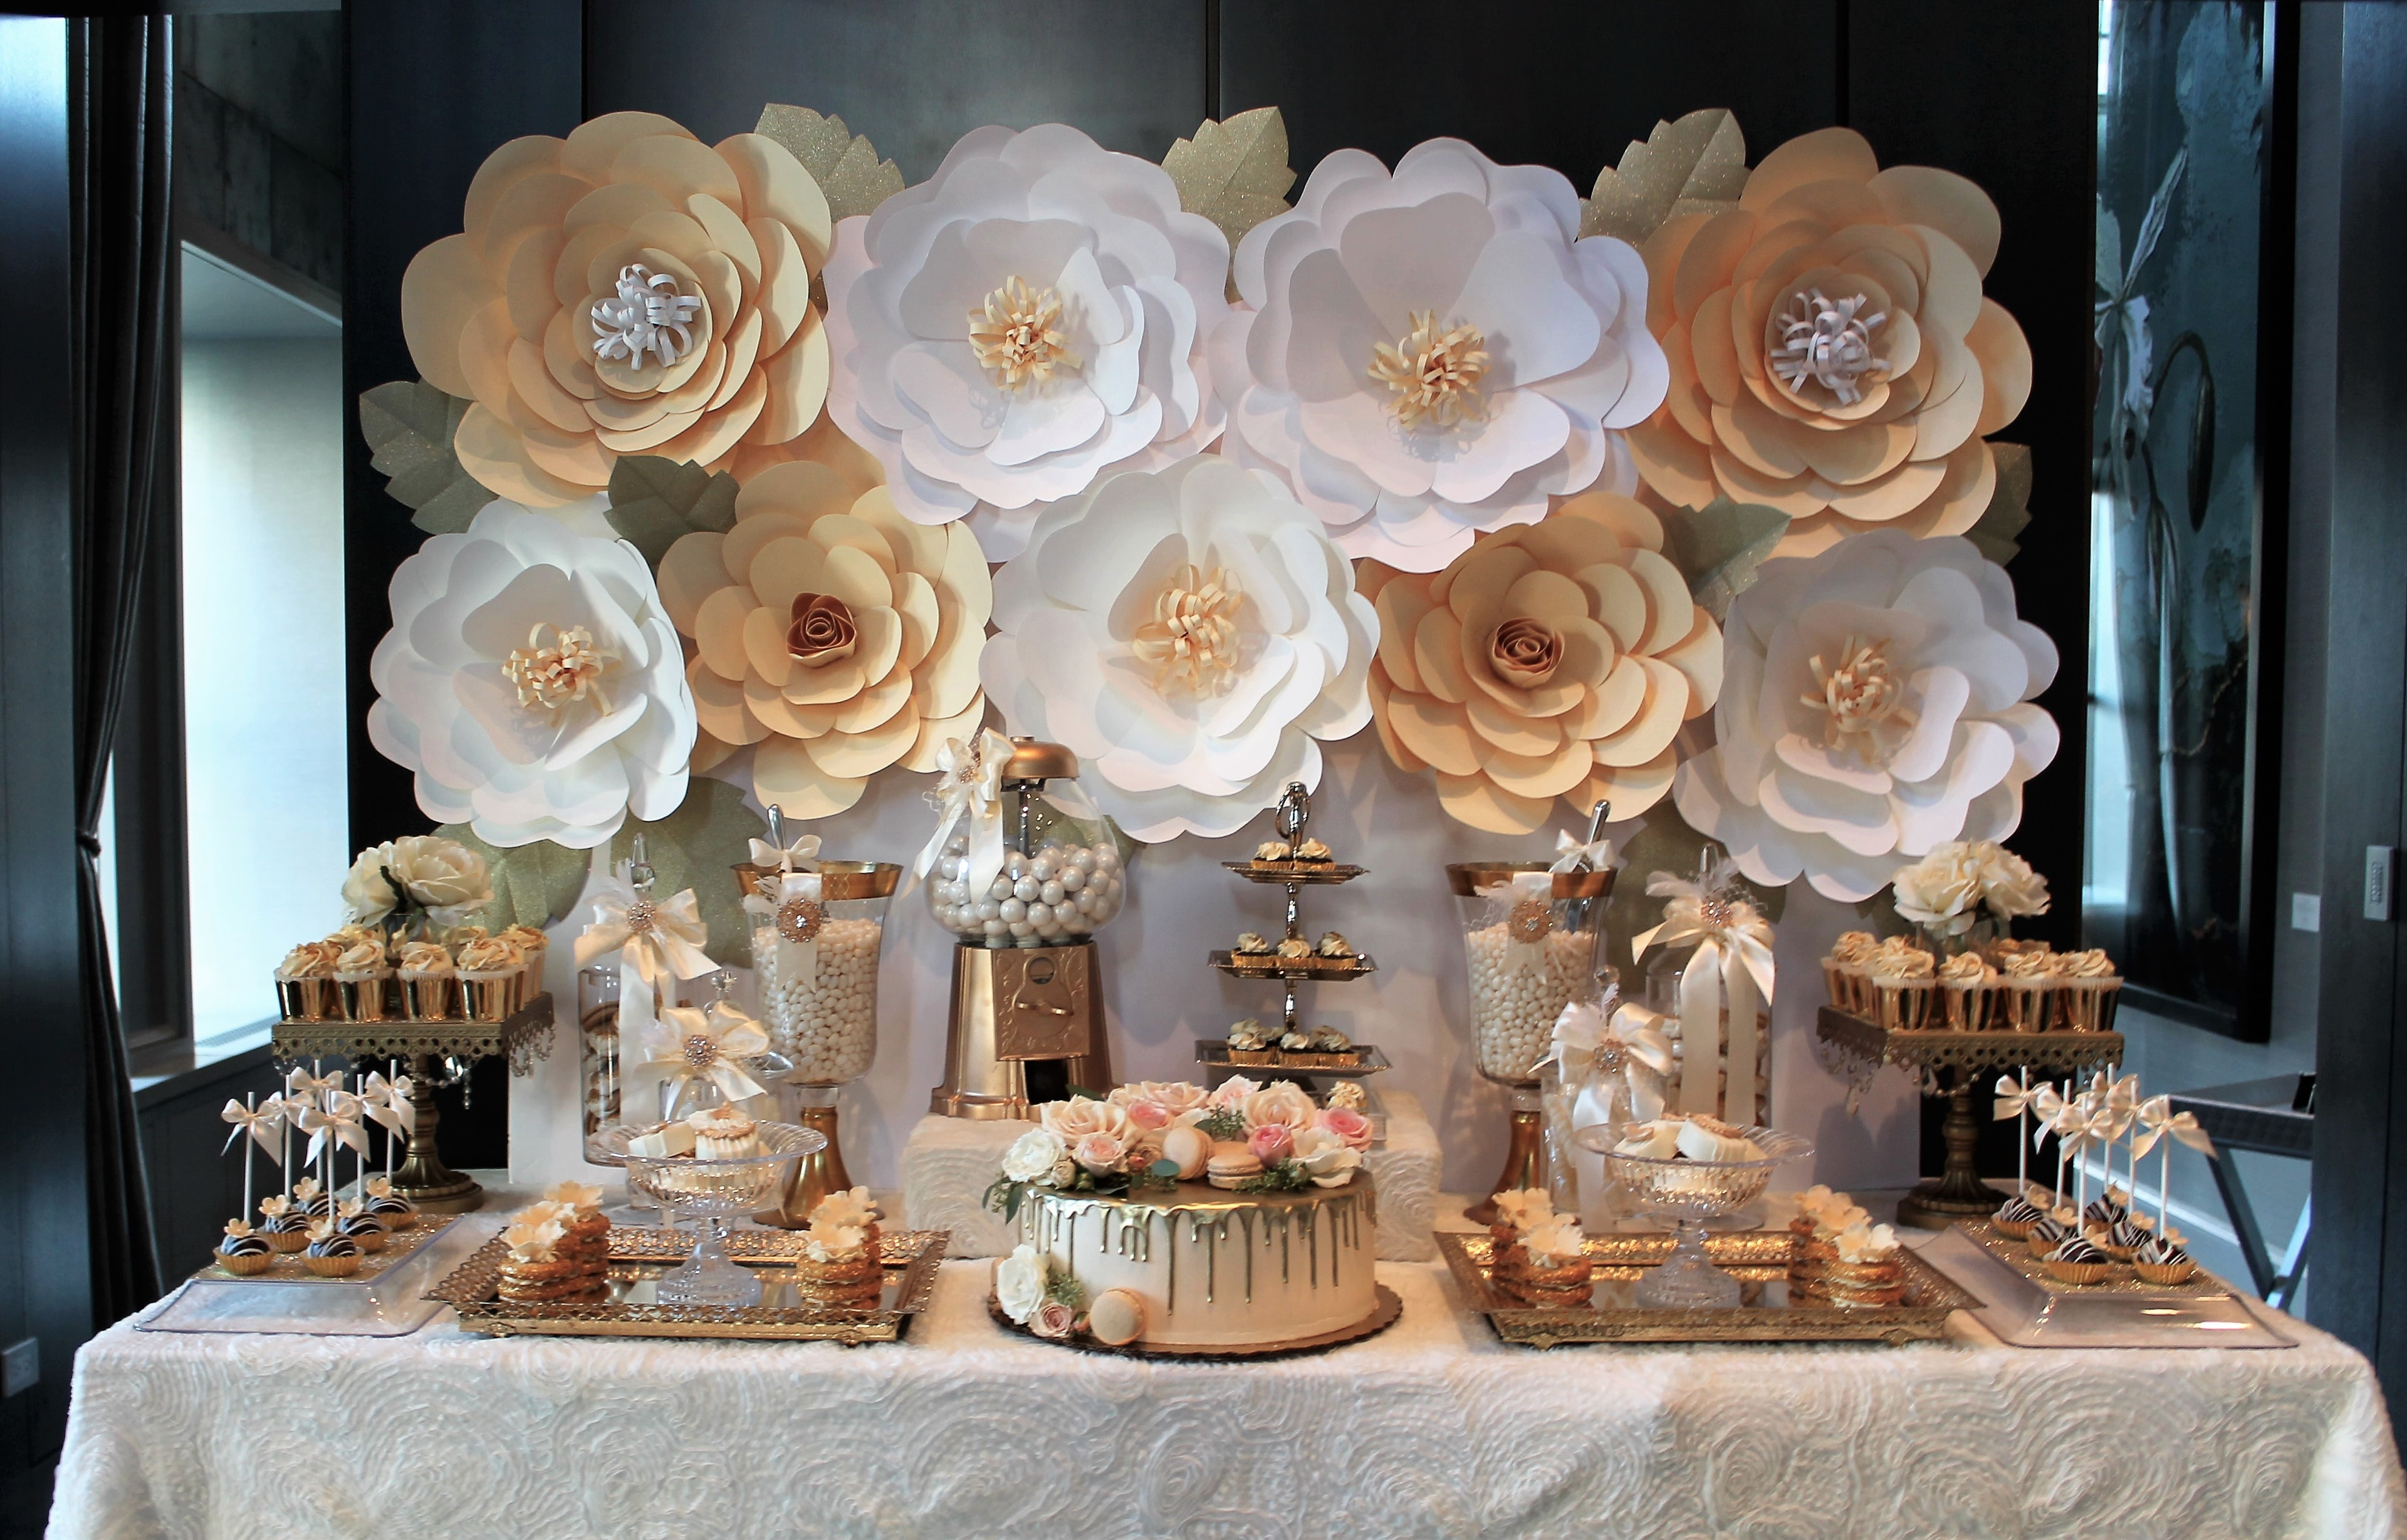 Cream and gold dessert table with a stunning paper flower wall backdrop